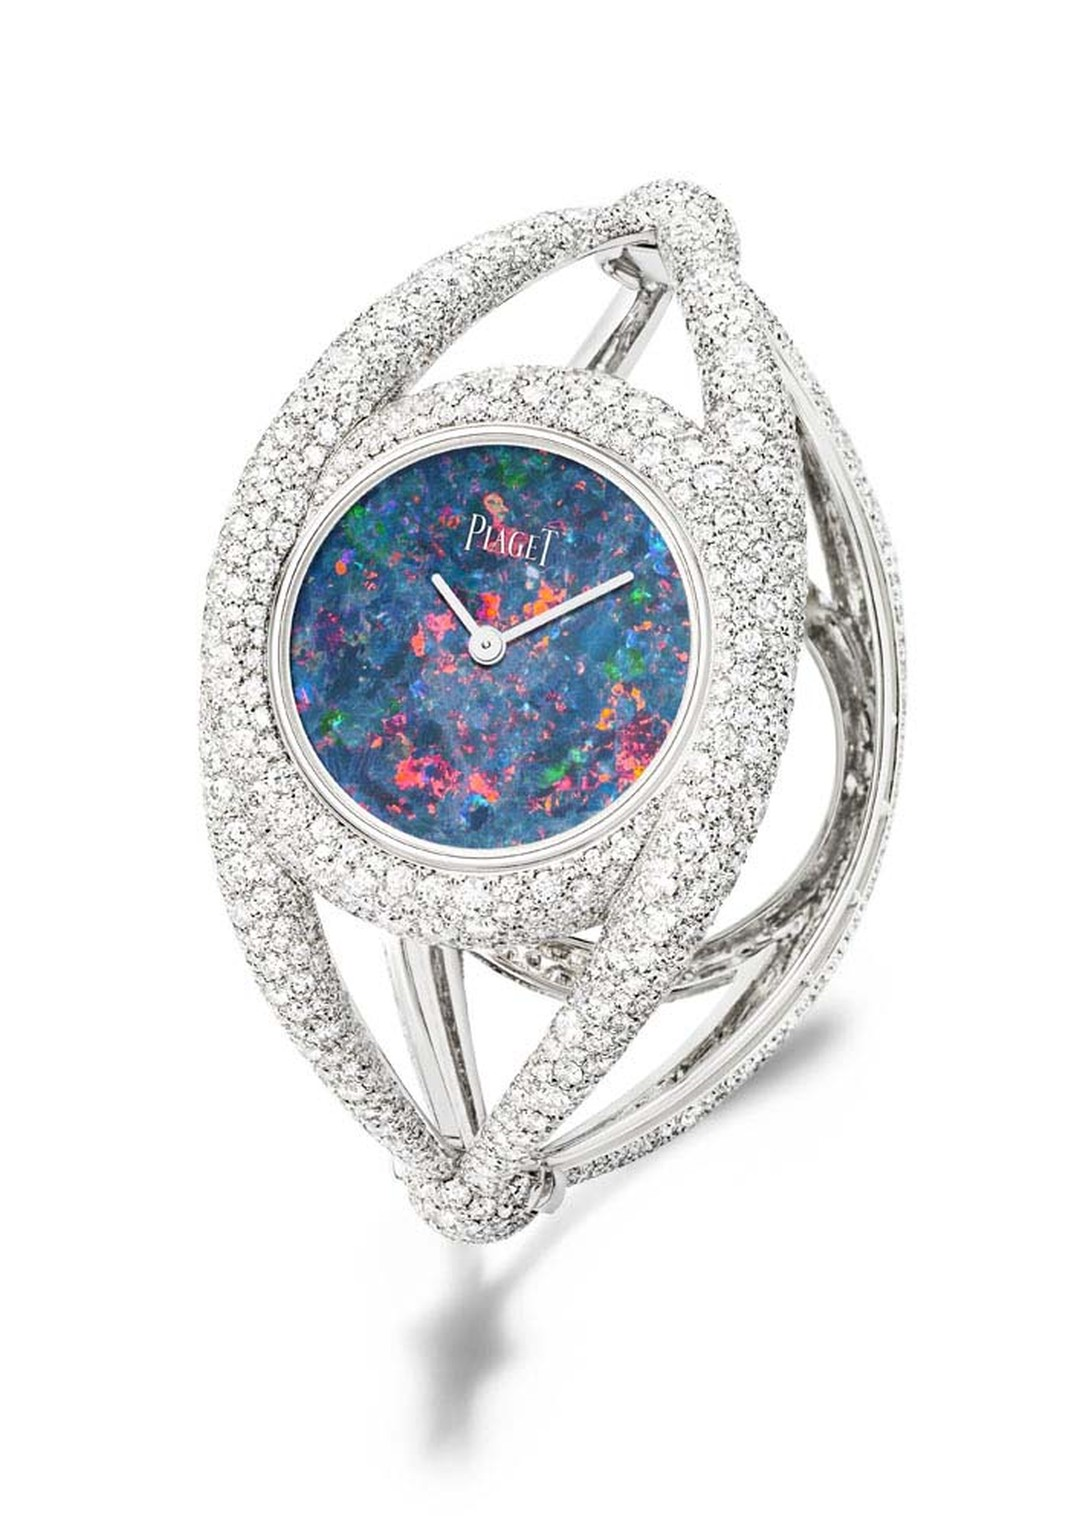 Piaget Extremely Piaget collection cuff watch in white gold, snow-set with 1,699 brilliant-cut diamonds and with a natural blue opal dial.